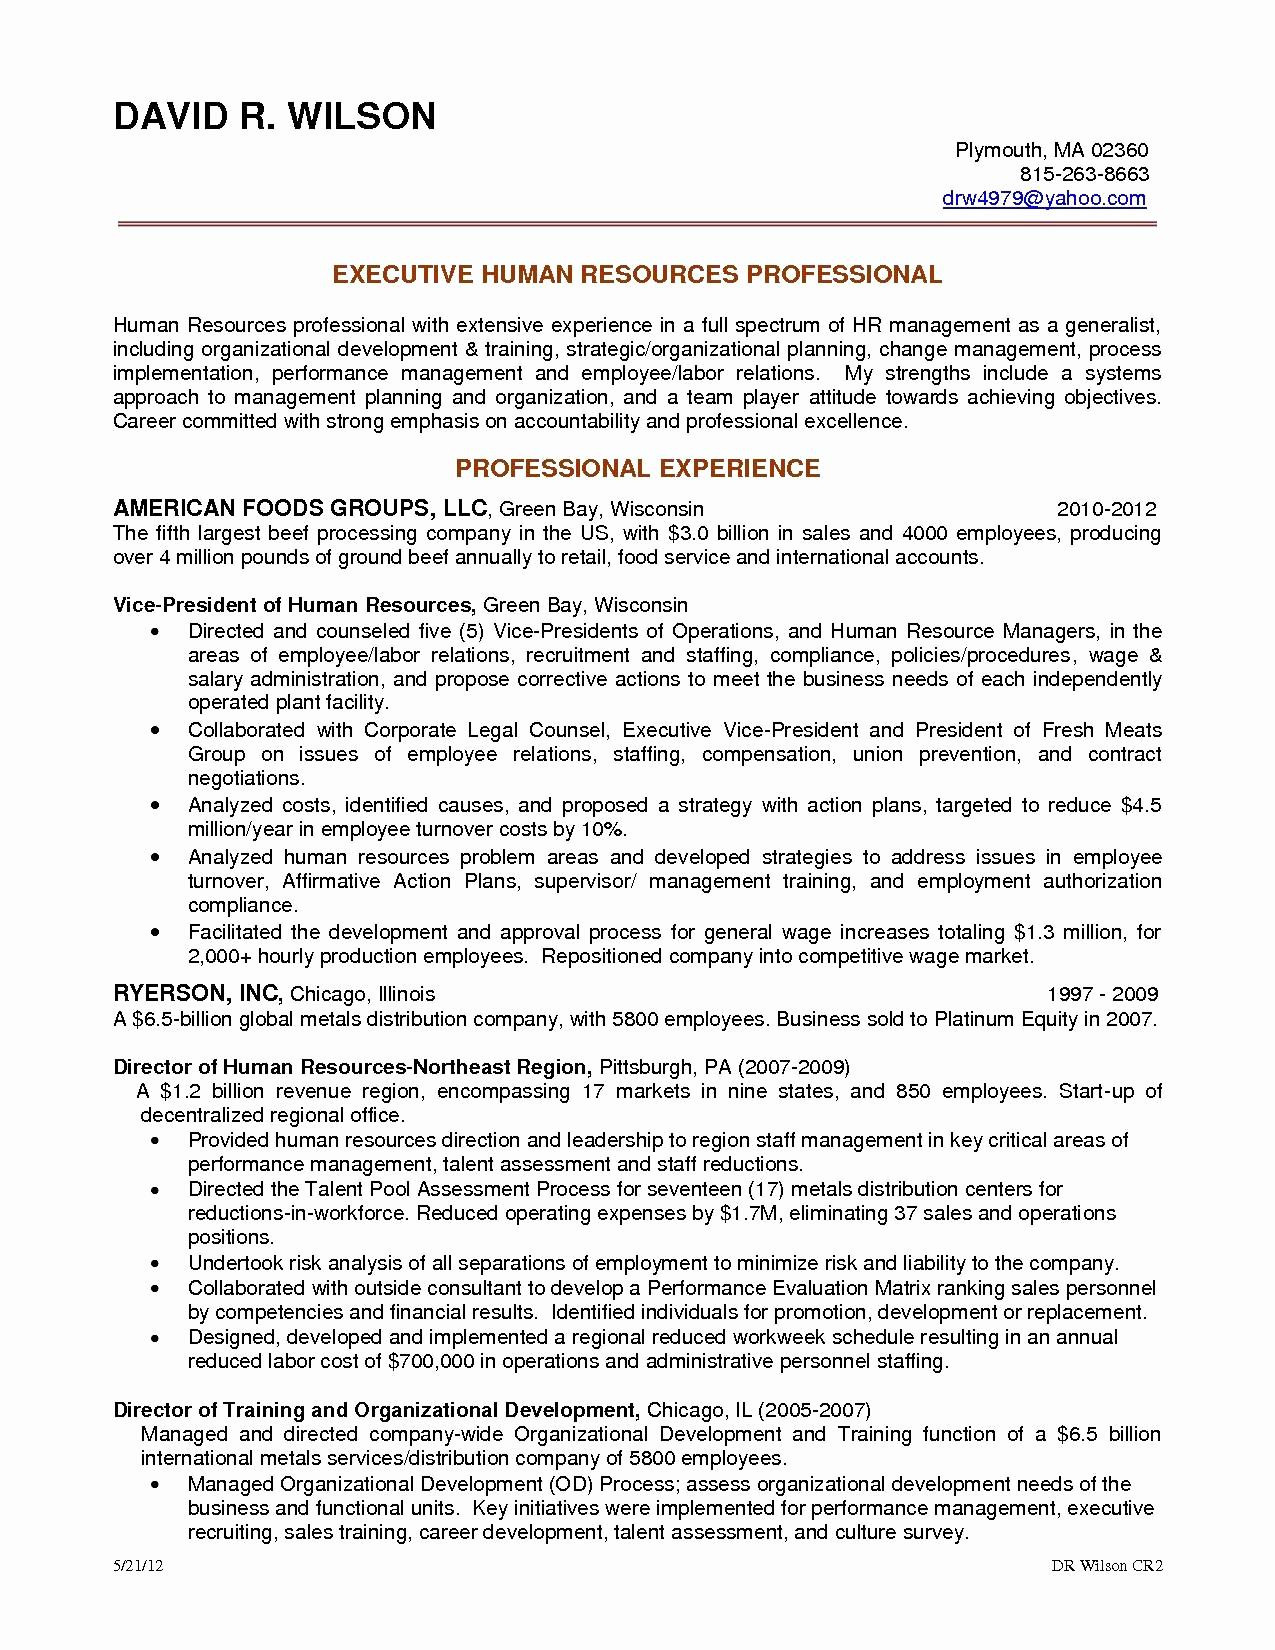 Service Industry Resume Templates - Resume format for Automobile Industry Unique Resume format for